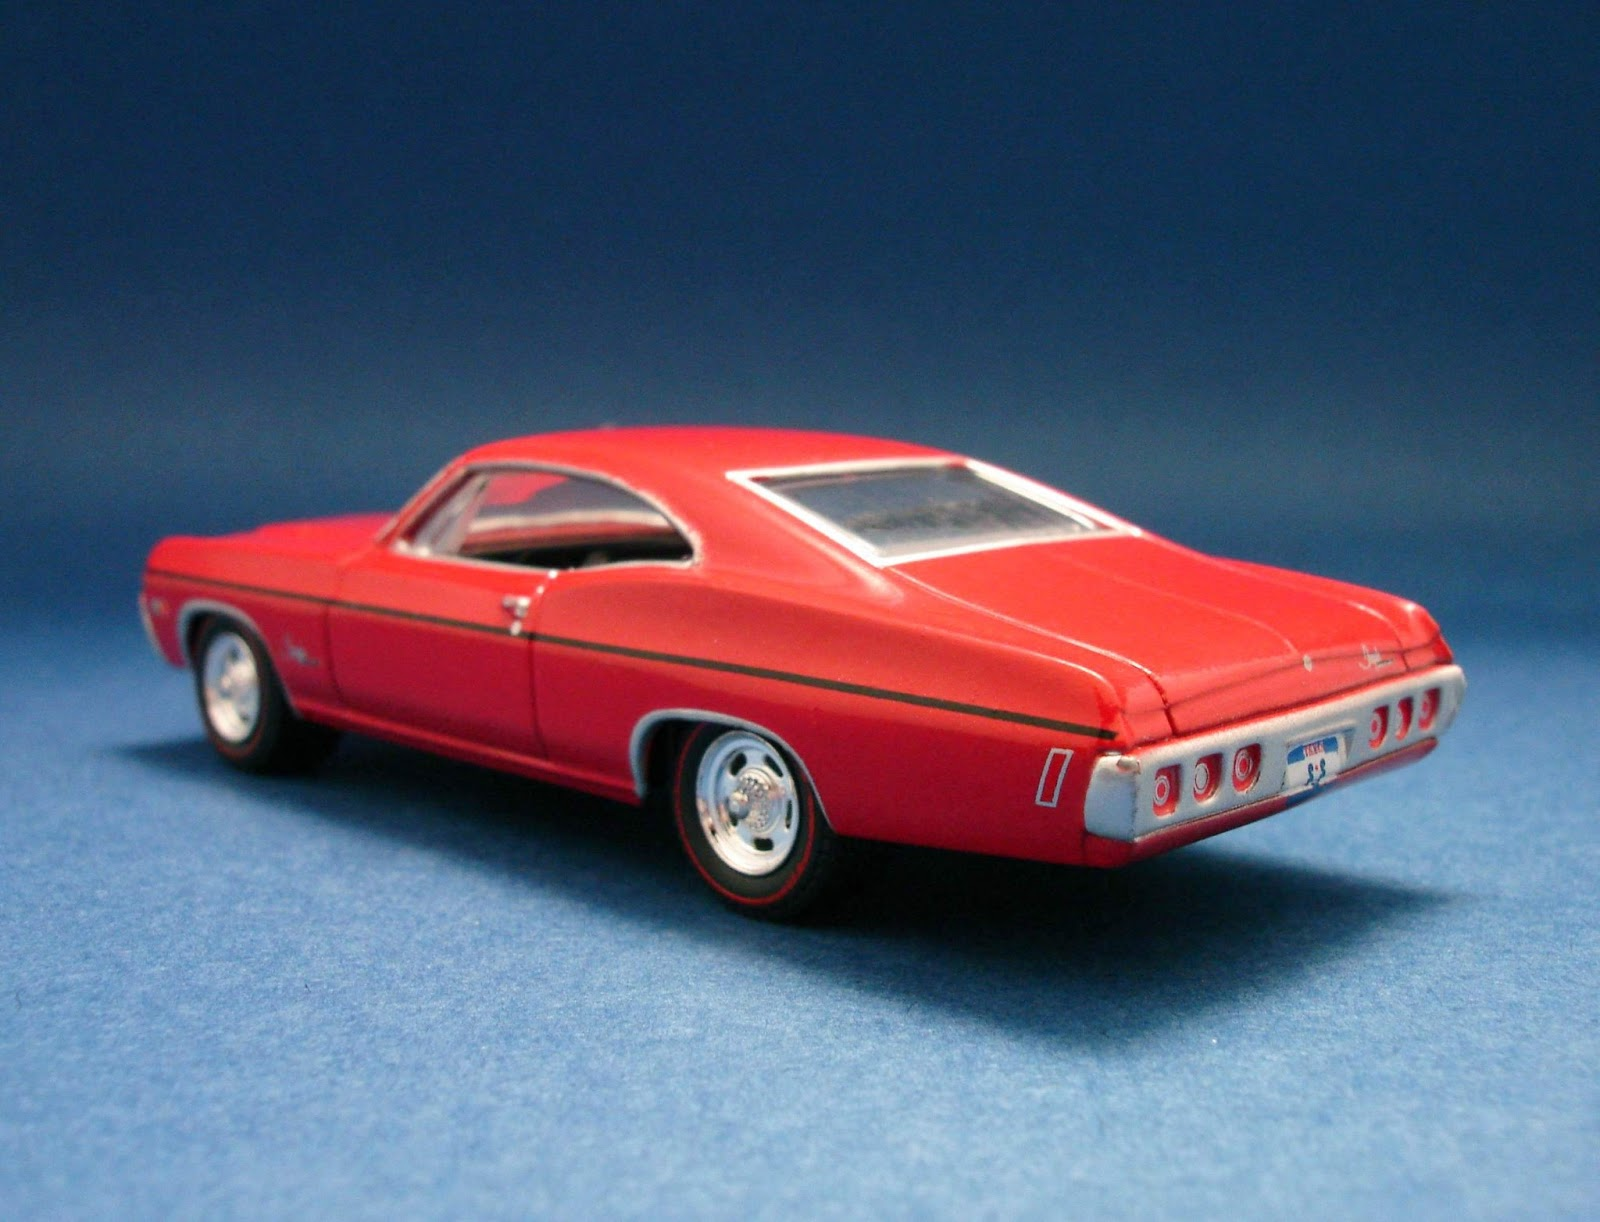 Diecast Hobbist 1968 Chevrolet Impala Ss Custom Coupe 164 Scale From Greenlight Muscle Car Garage Stock Series 1